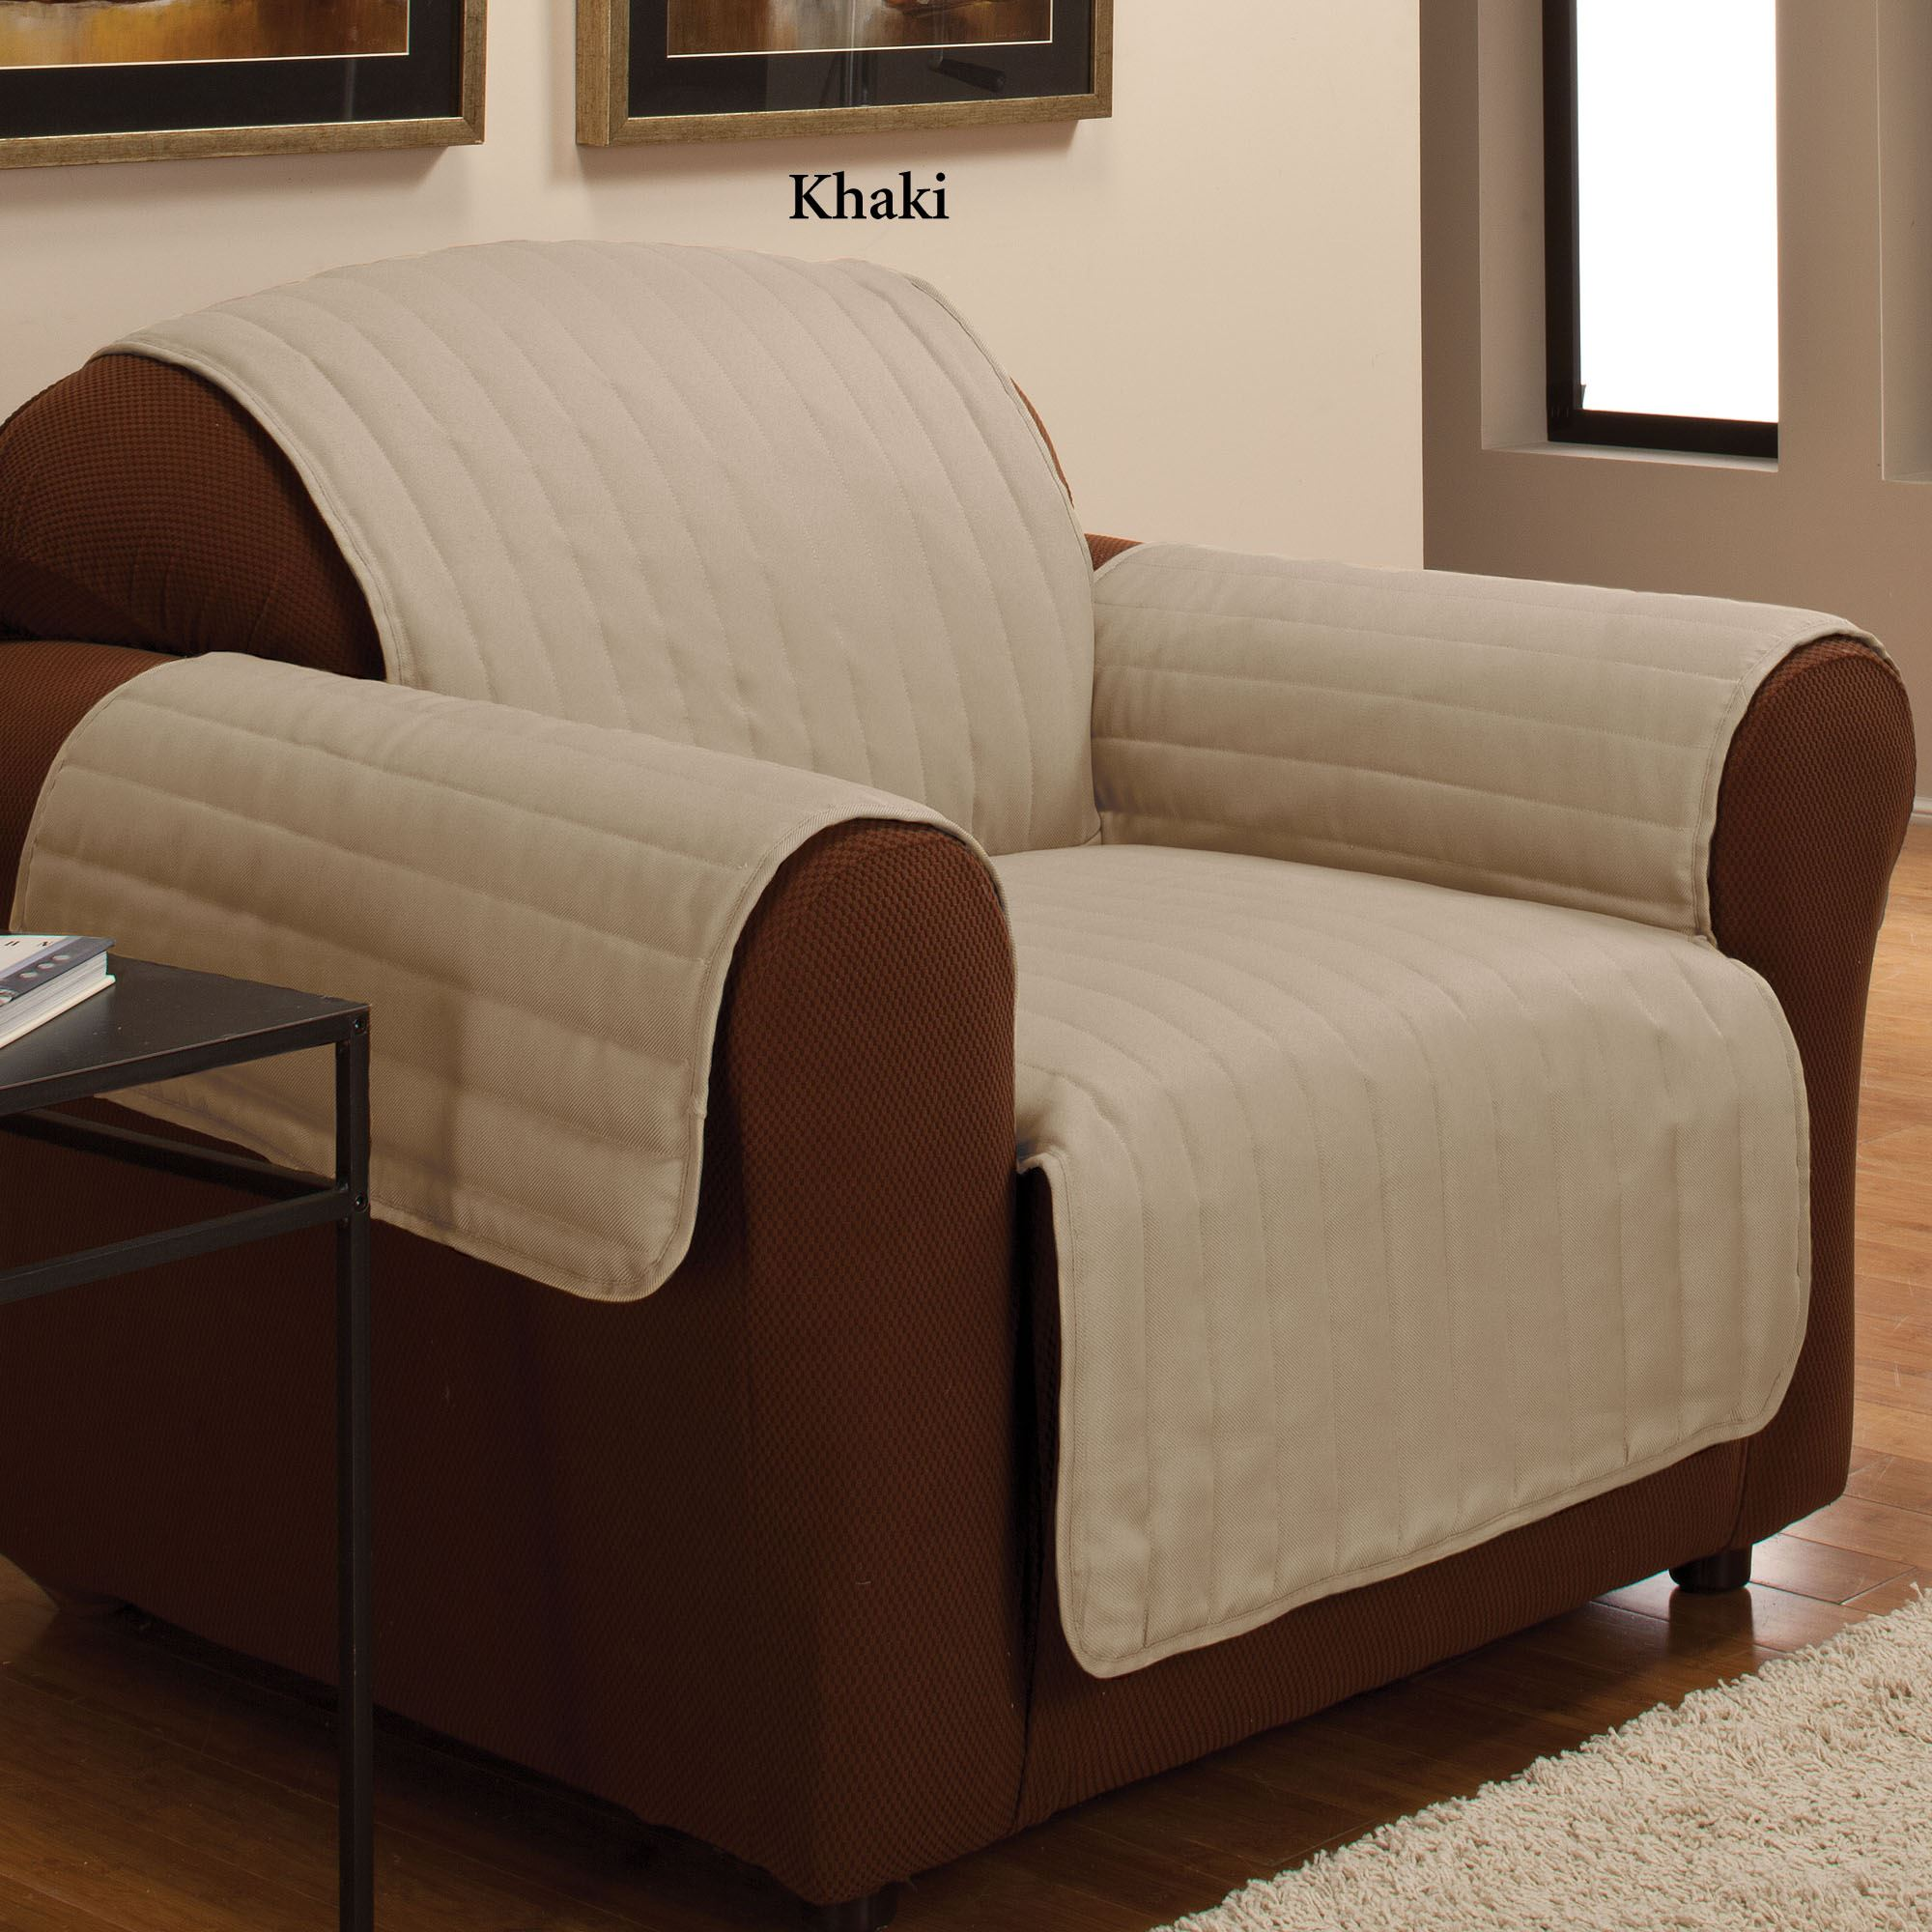 khaki sofa slipcovers family room design with brown leather twill pet furniture cover